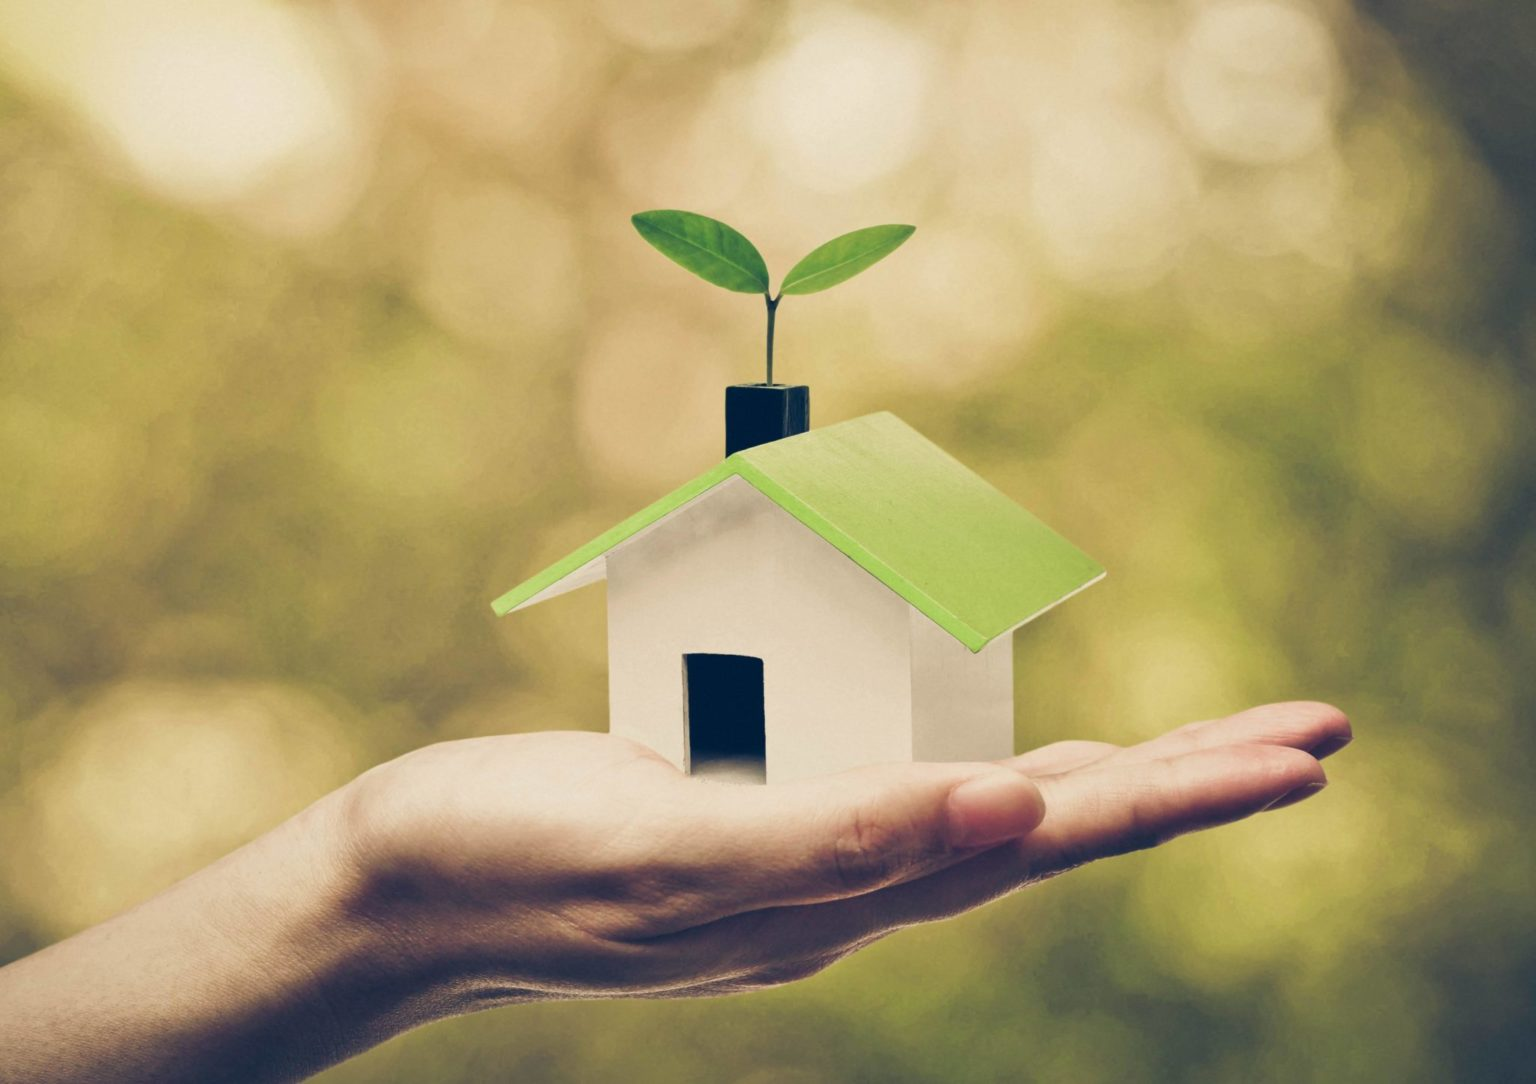 Green home in palm of a hand